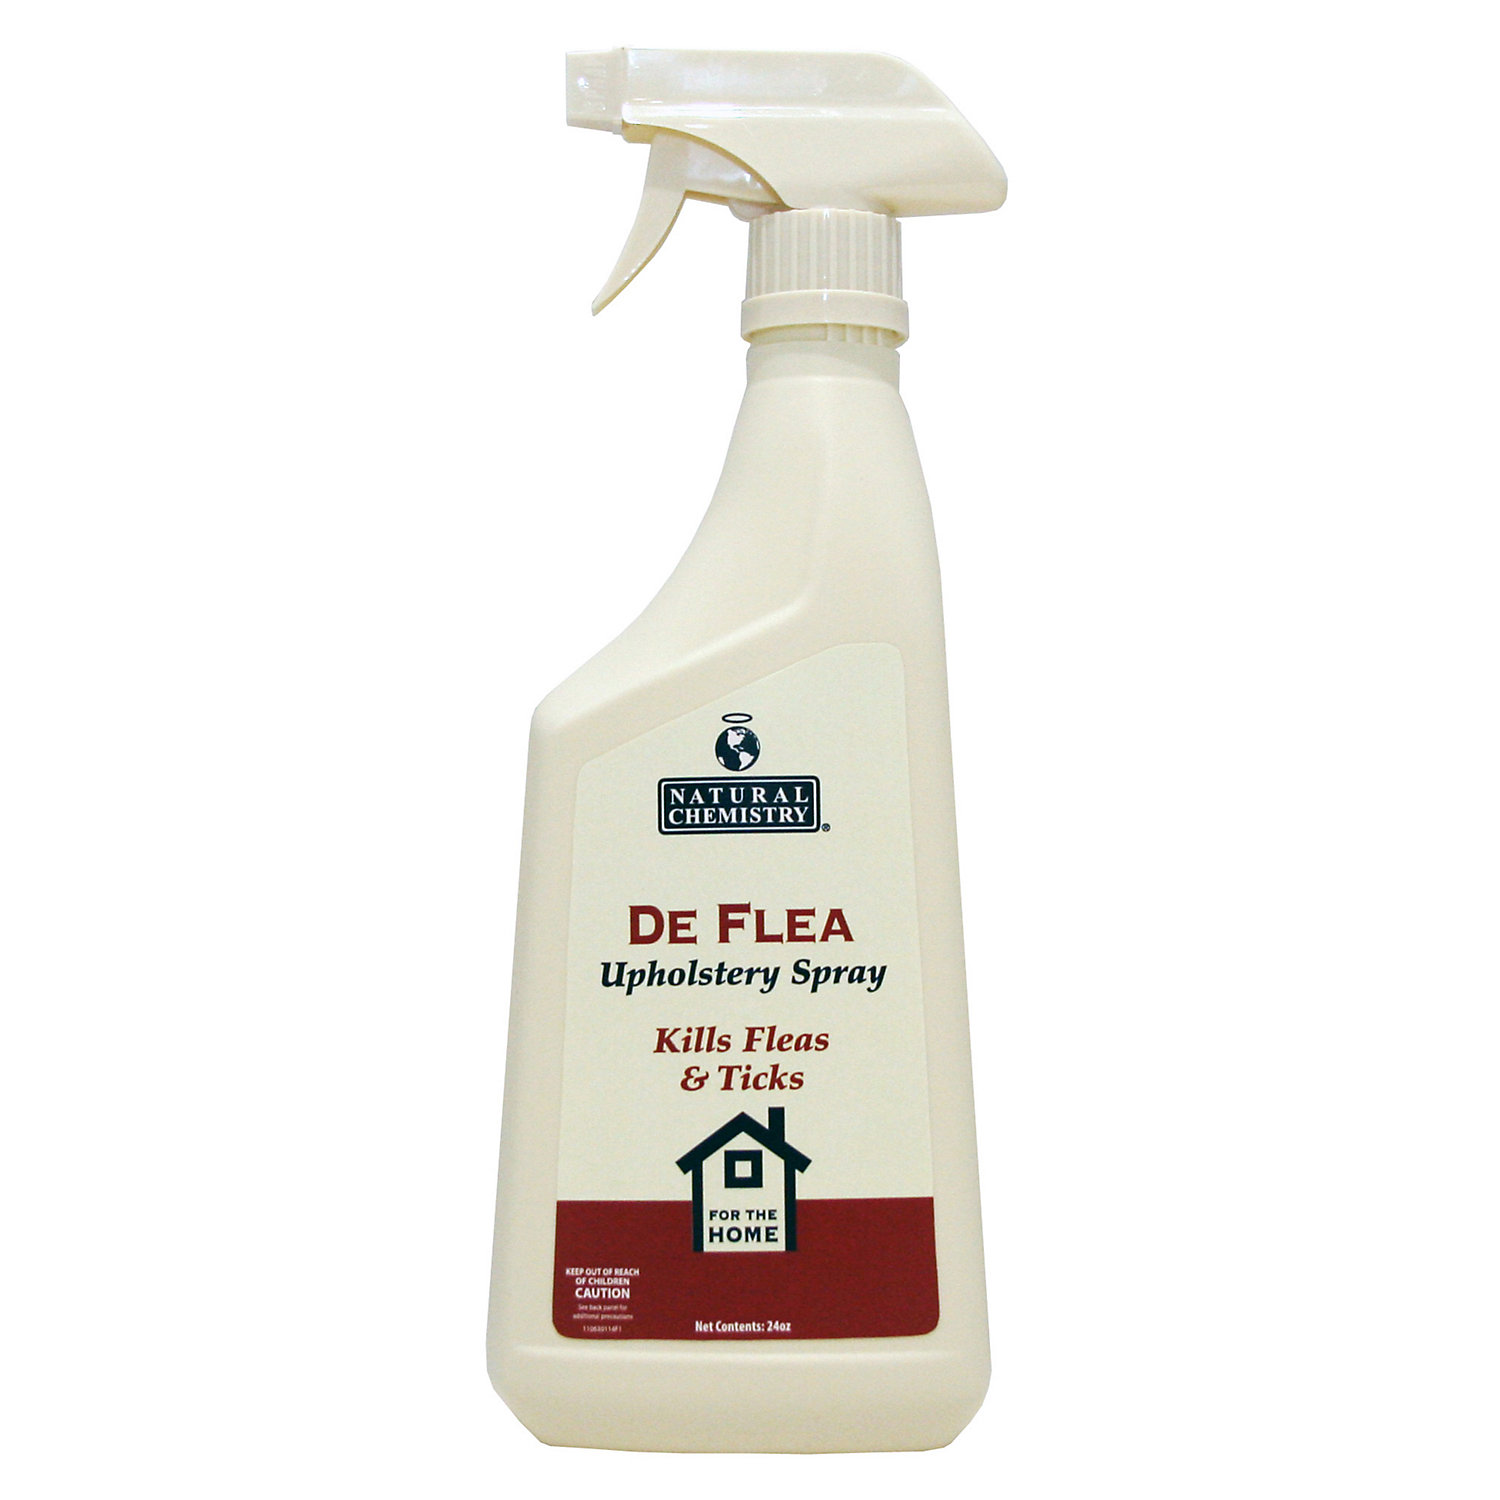 Image of Natural Chemistry De Flea Upholstery Spray